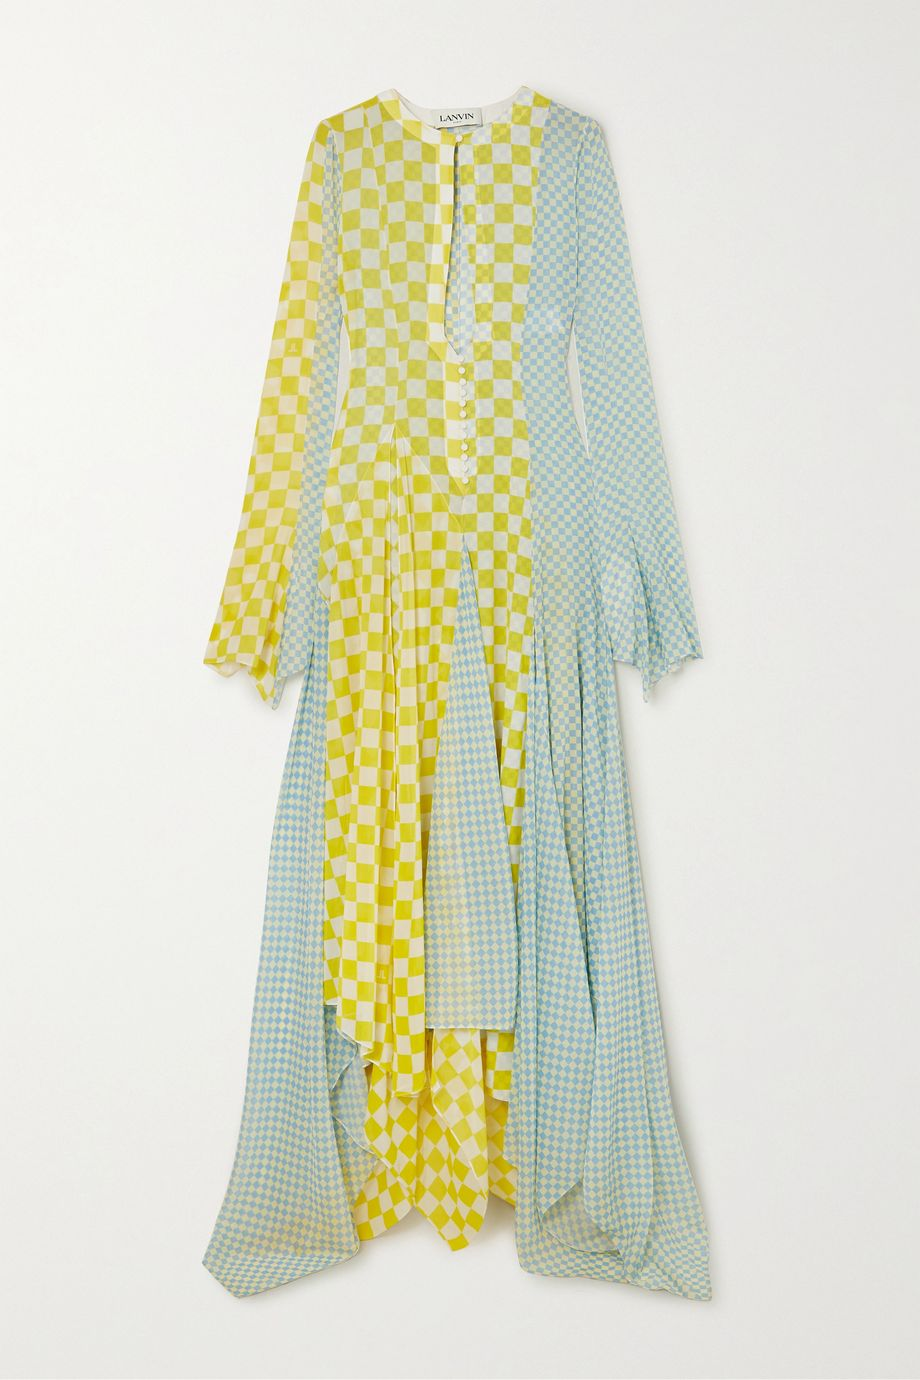 Lanvin Asymmetric checked silk-chiffon gown